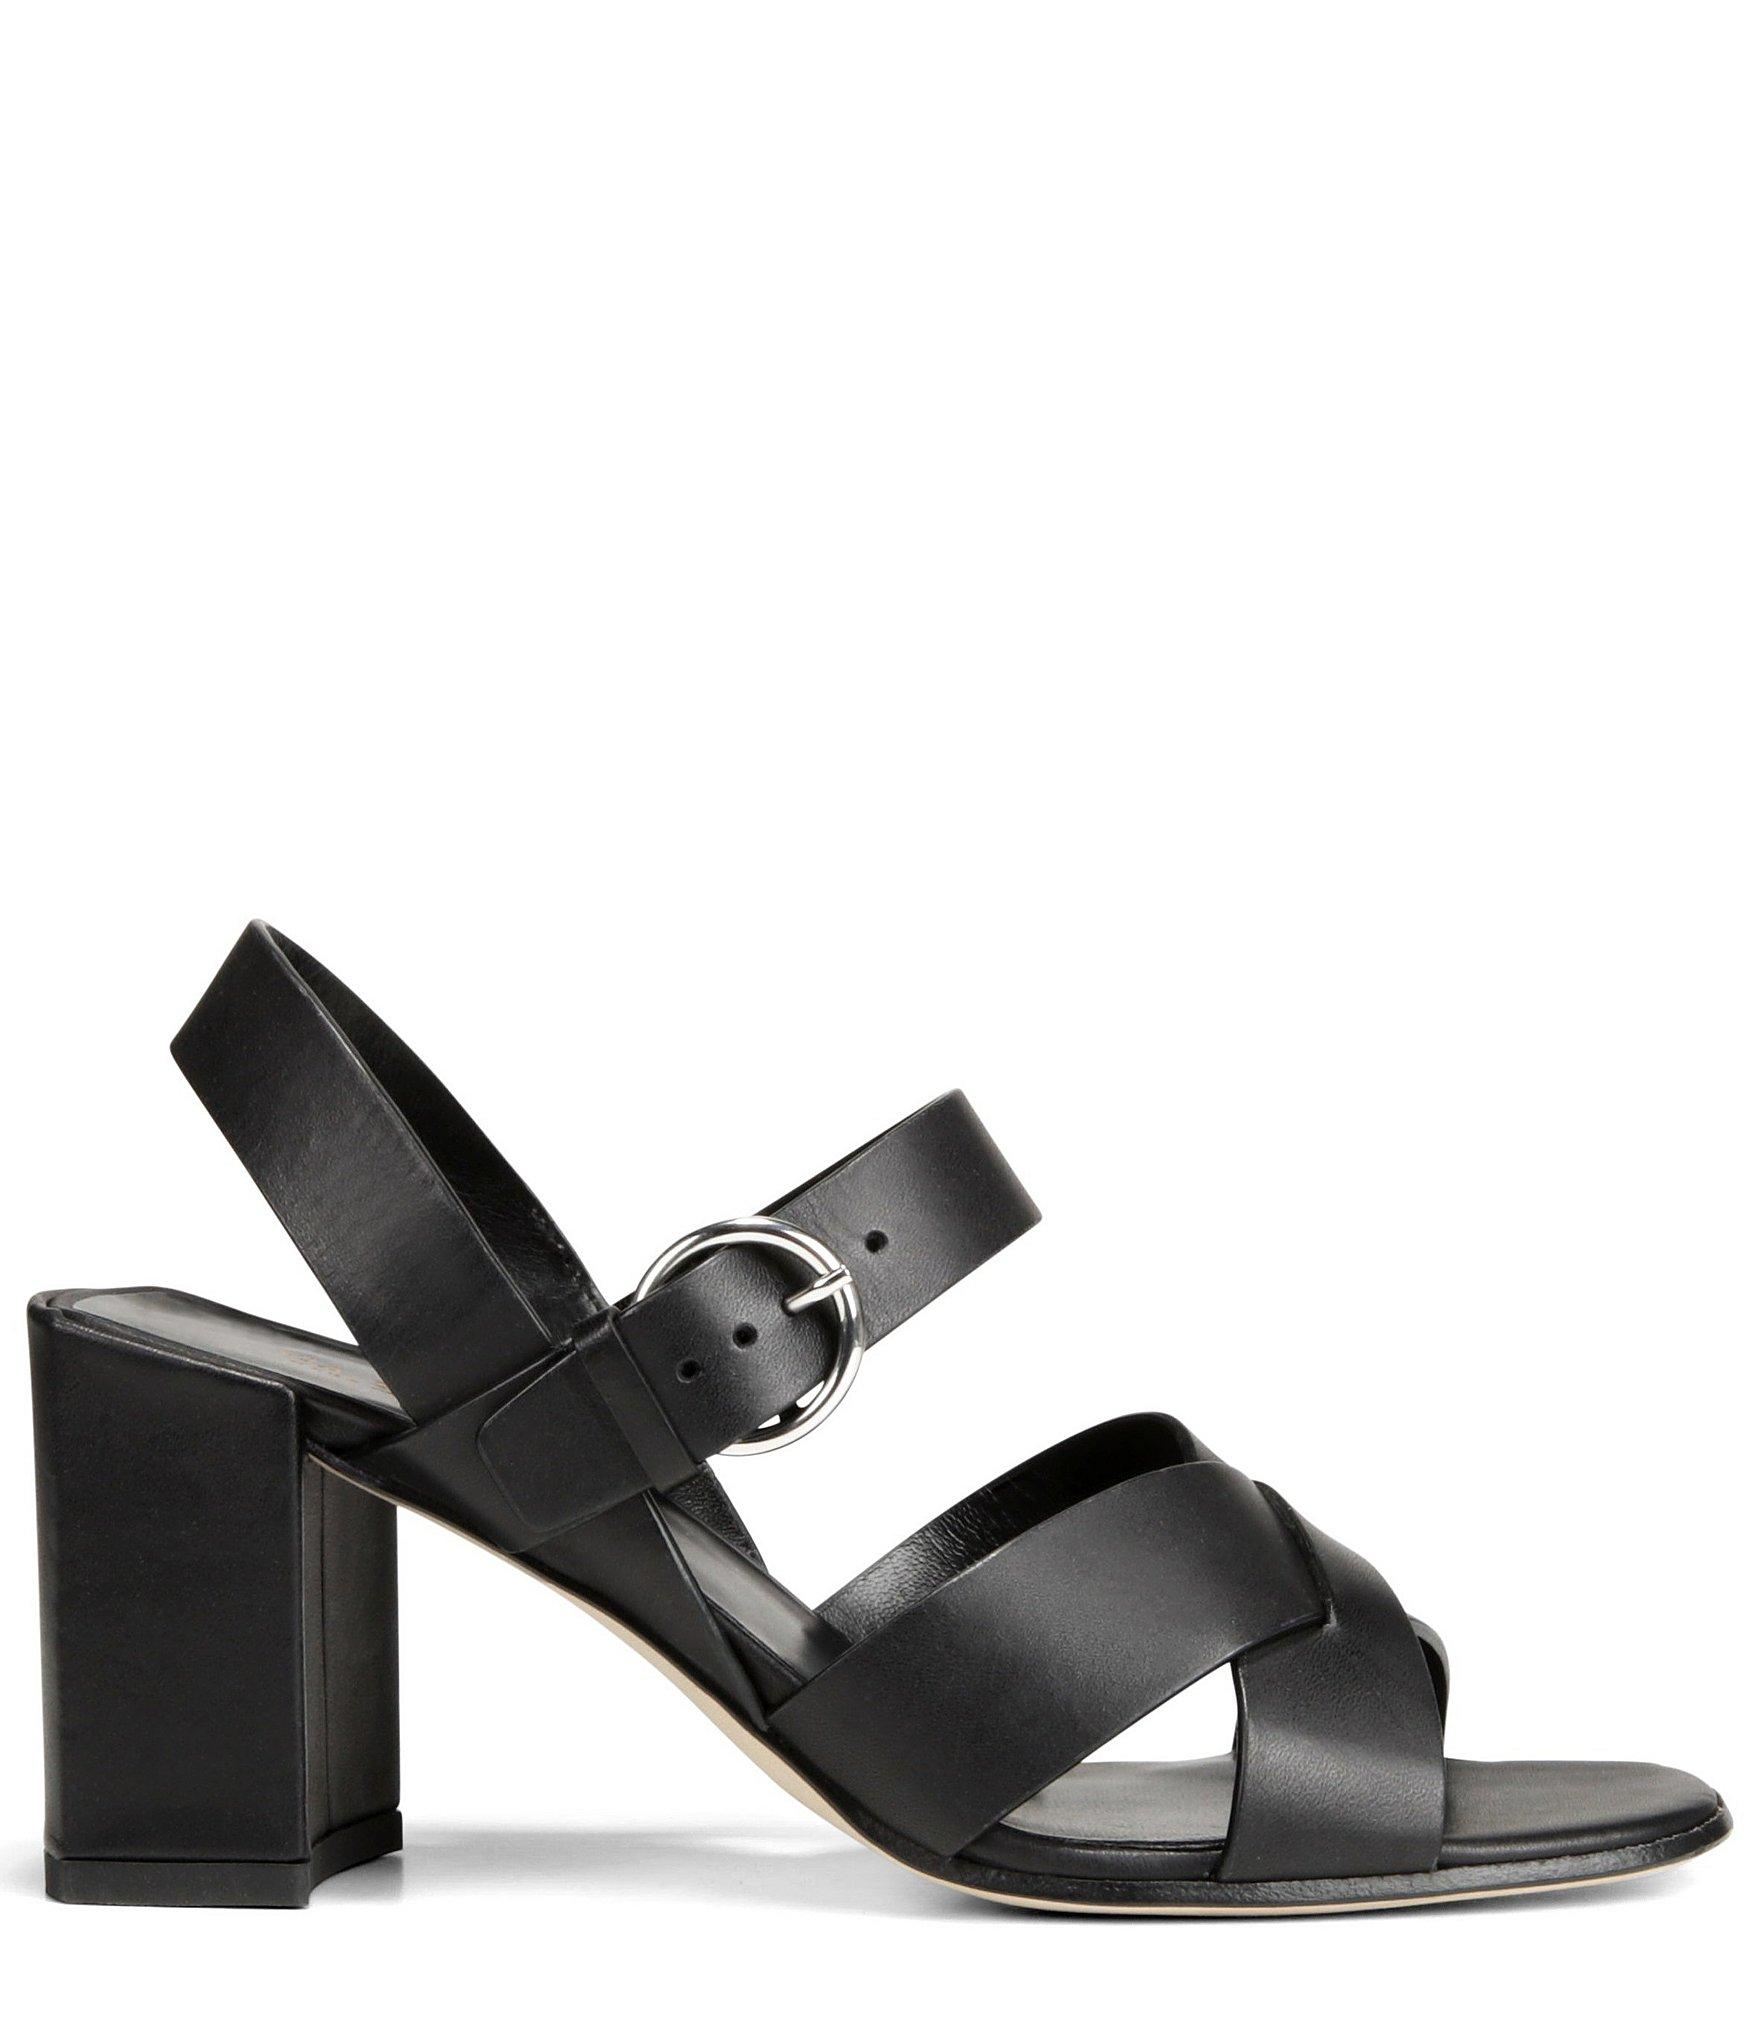 271487efdb09 Via Spiga - Black Women s Opal Block Heel Sandals - Lyst. View fullscreen